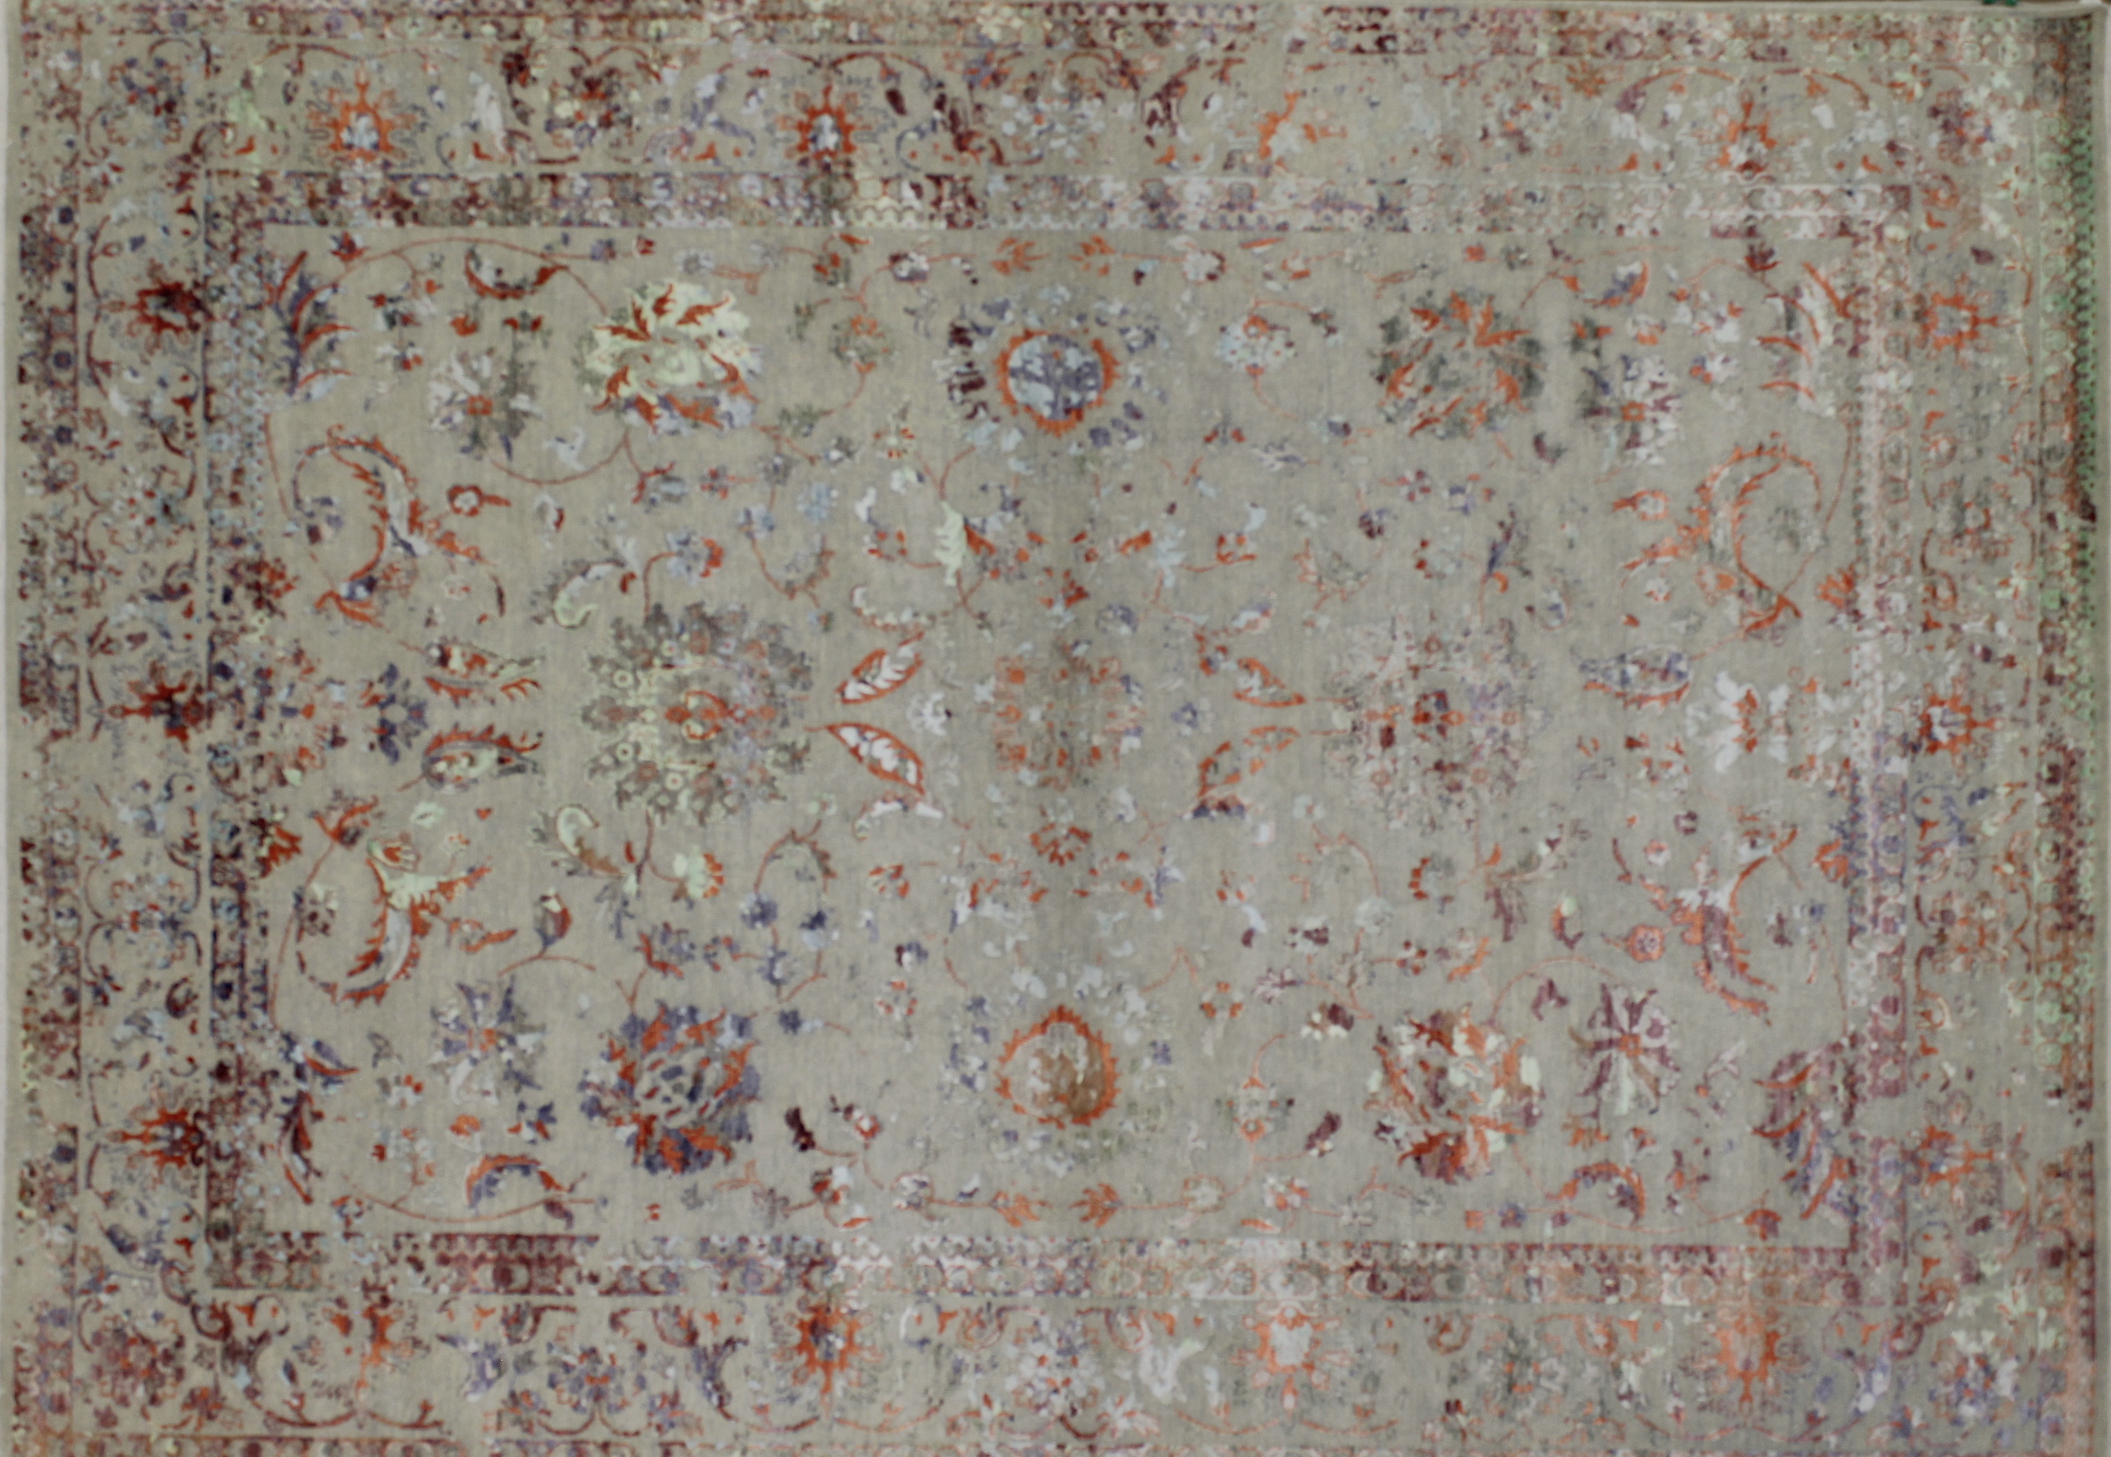 9x12 Contemporary Hand Knotted Wool Area Rug - MR022394